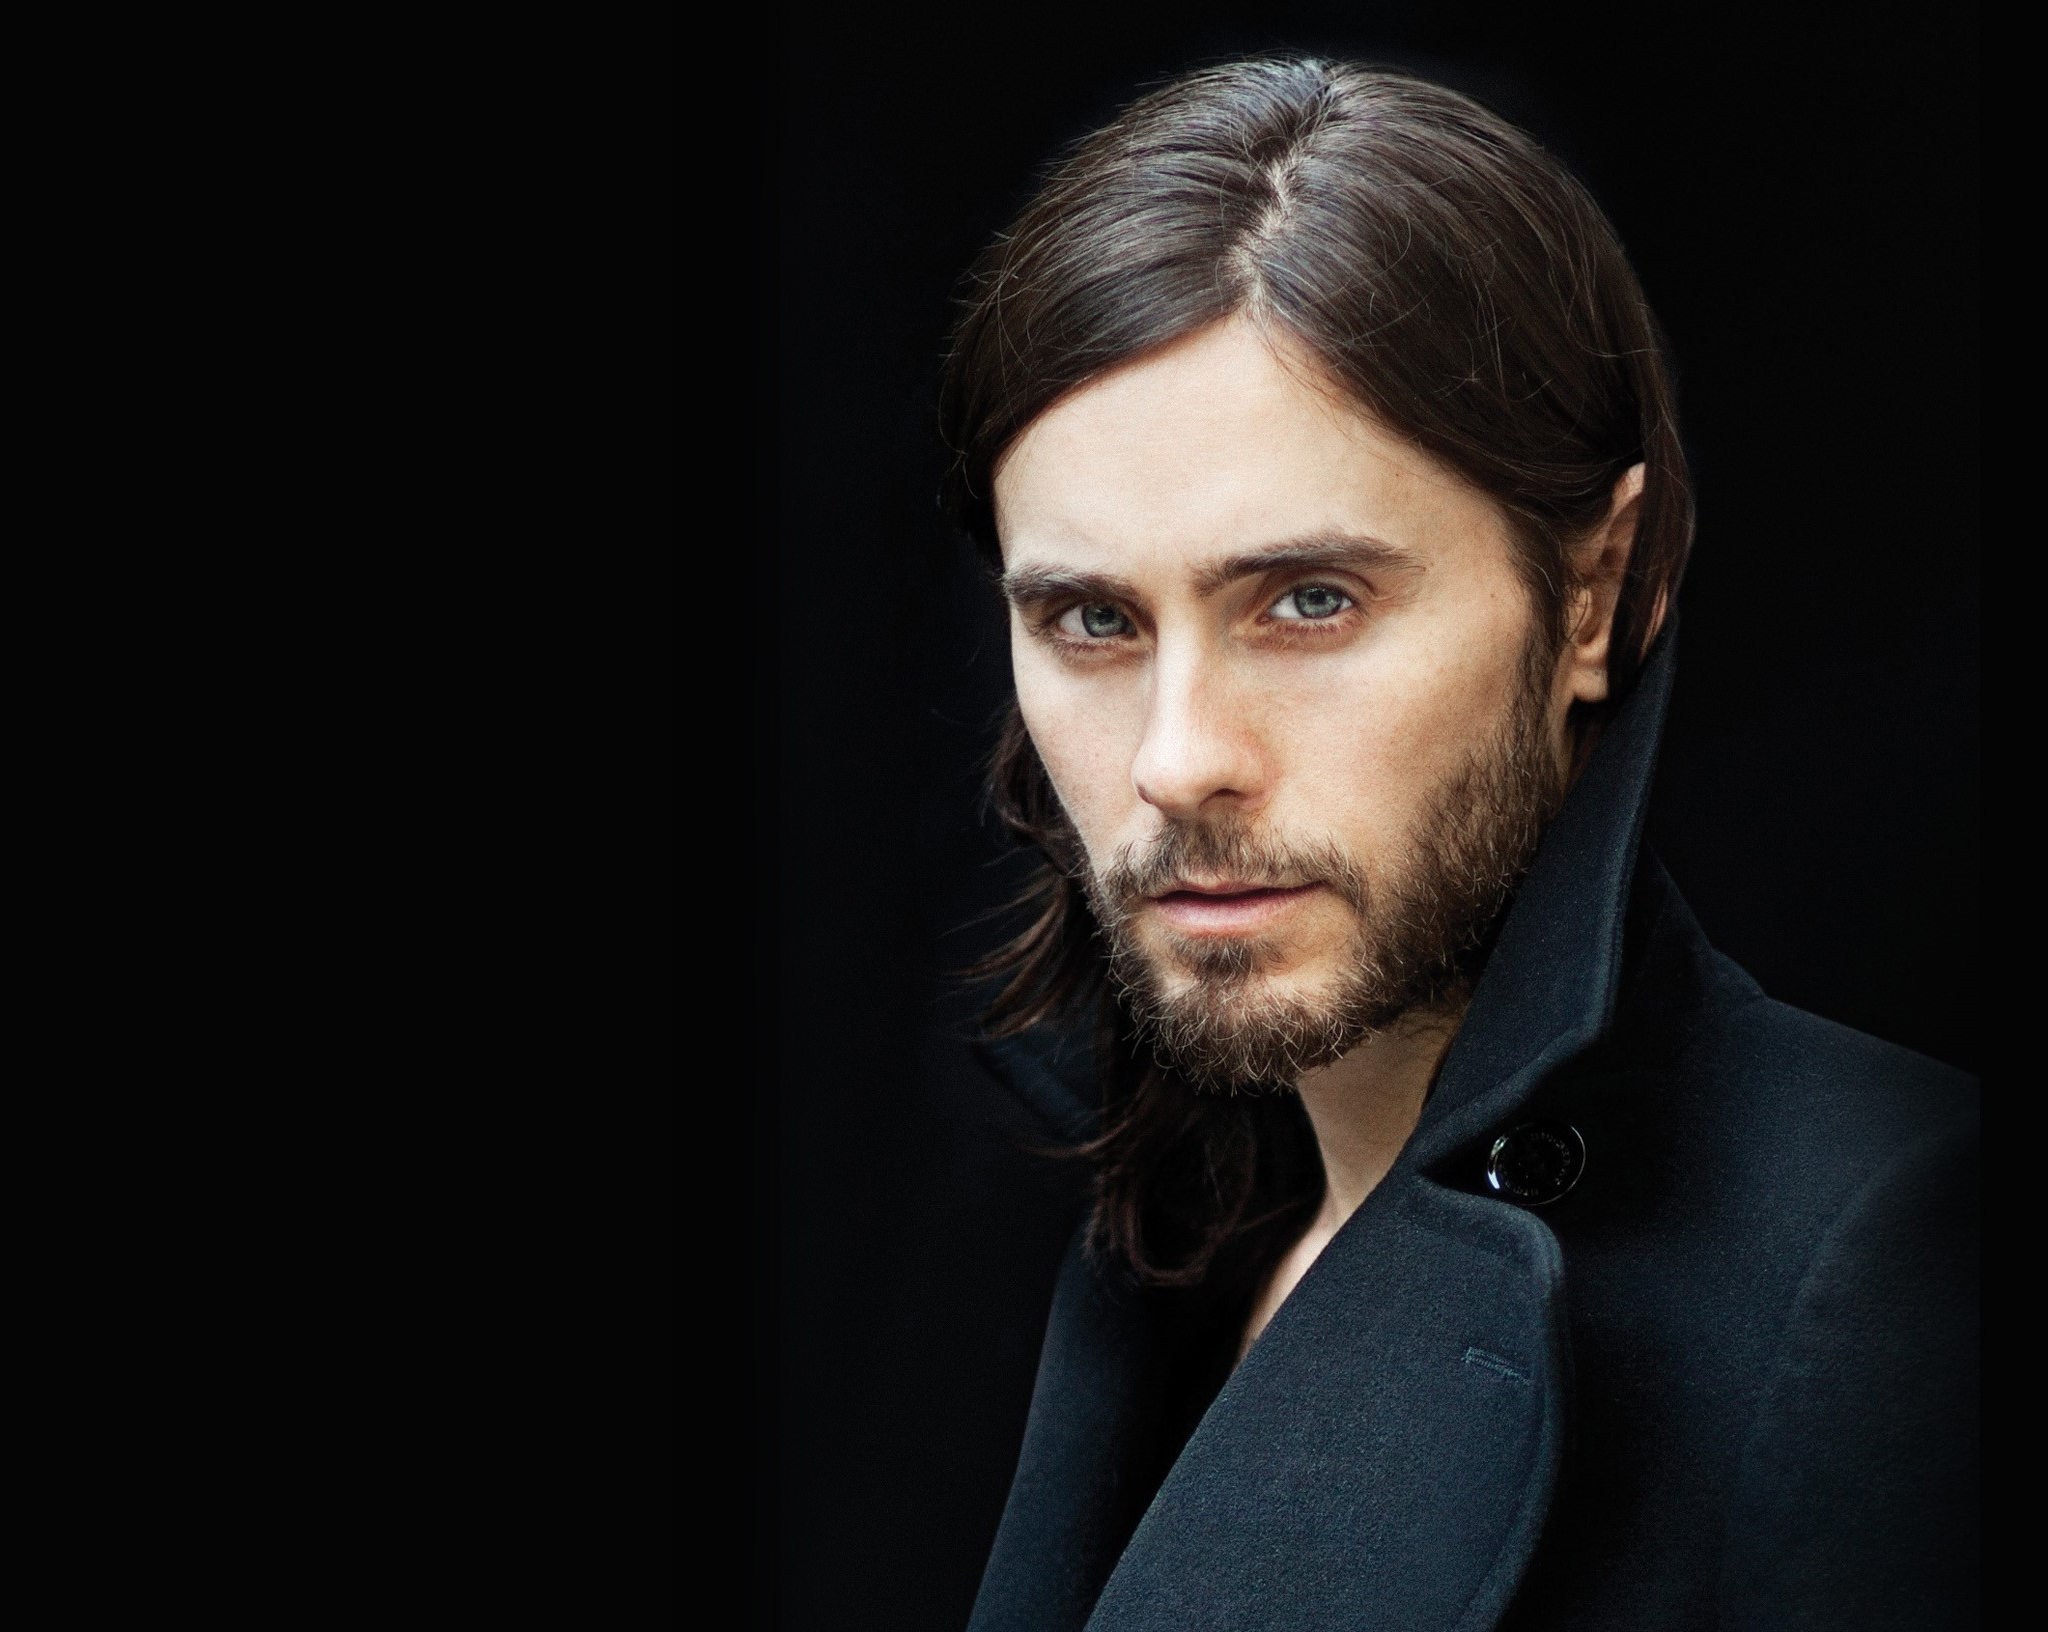 Global Music Rights Jared Leto